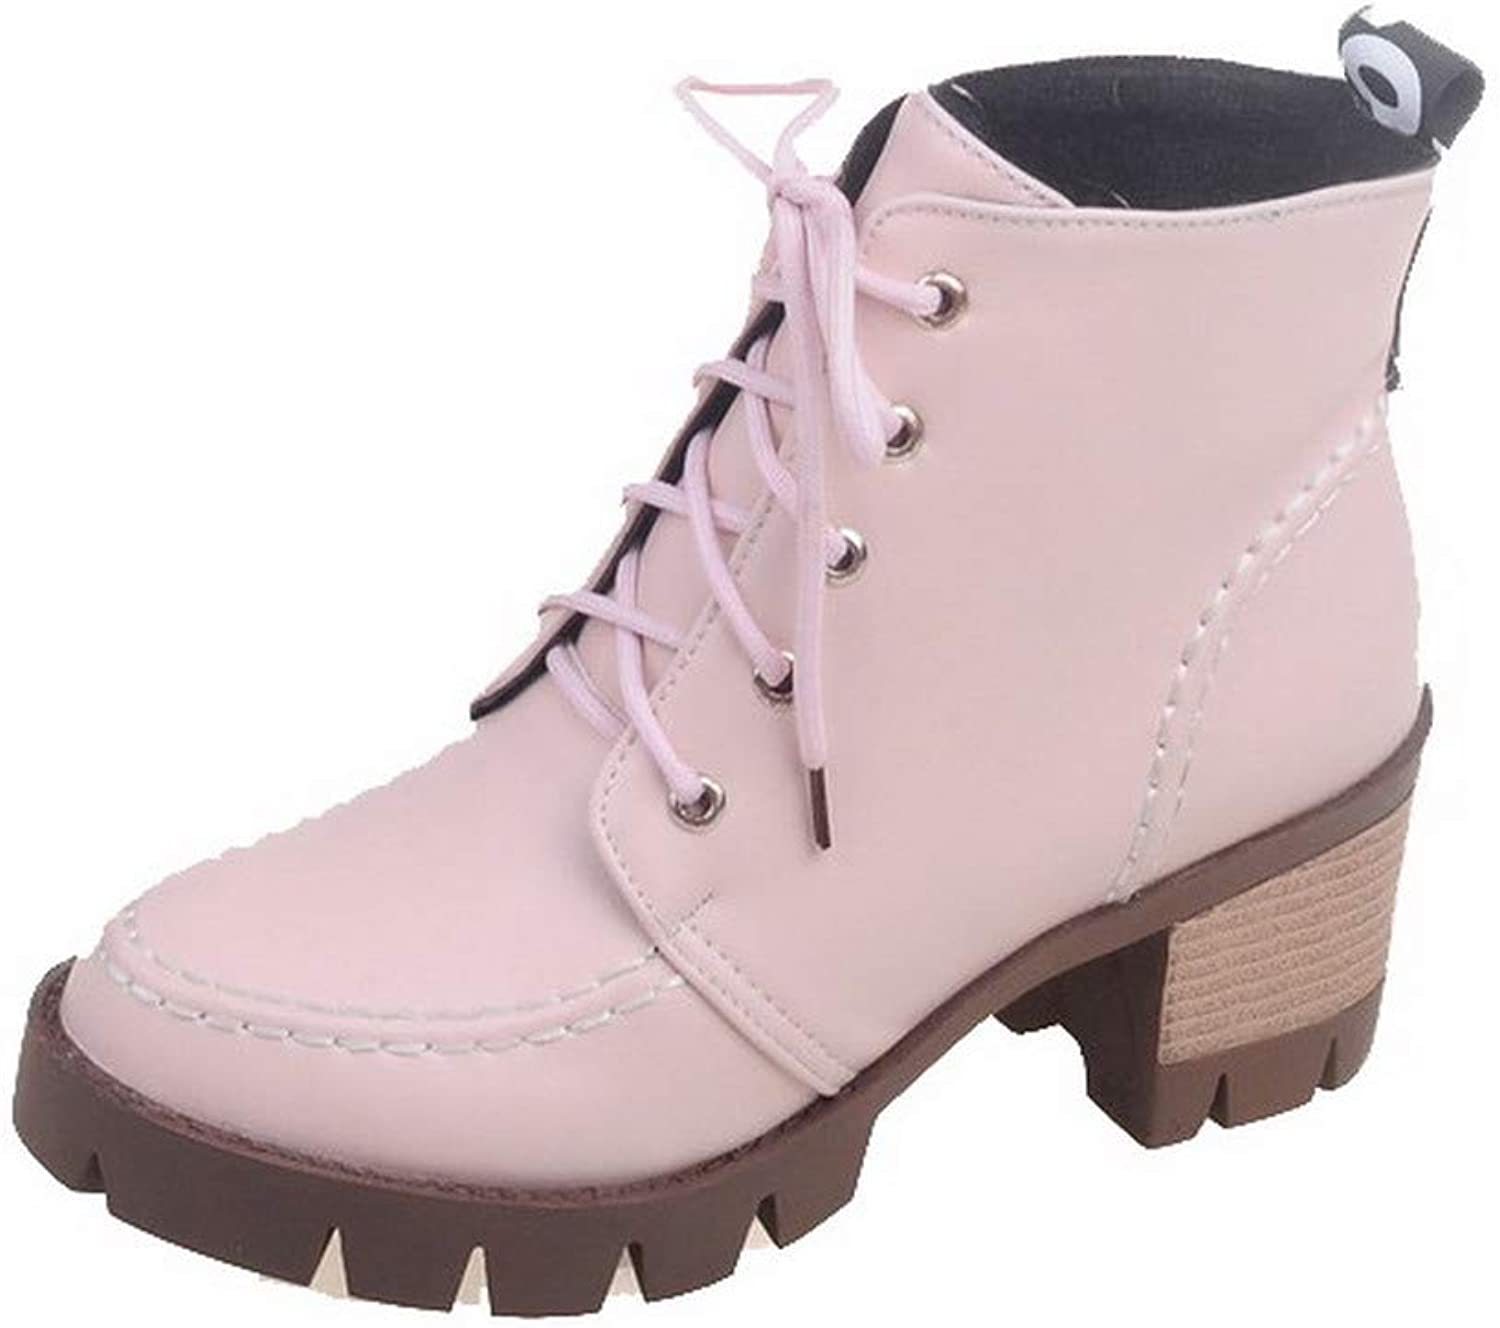 WeiPoot Women's Pu Low-Top Solid Lace-Up Kitten-Heels Boots, EGHXH109208